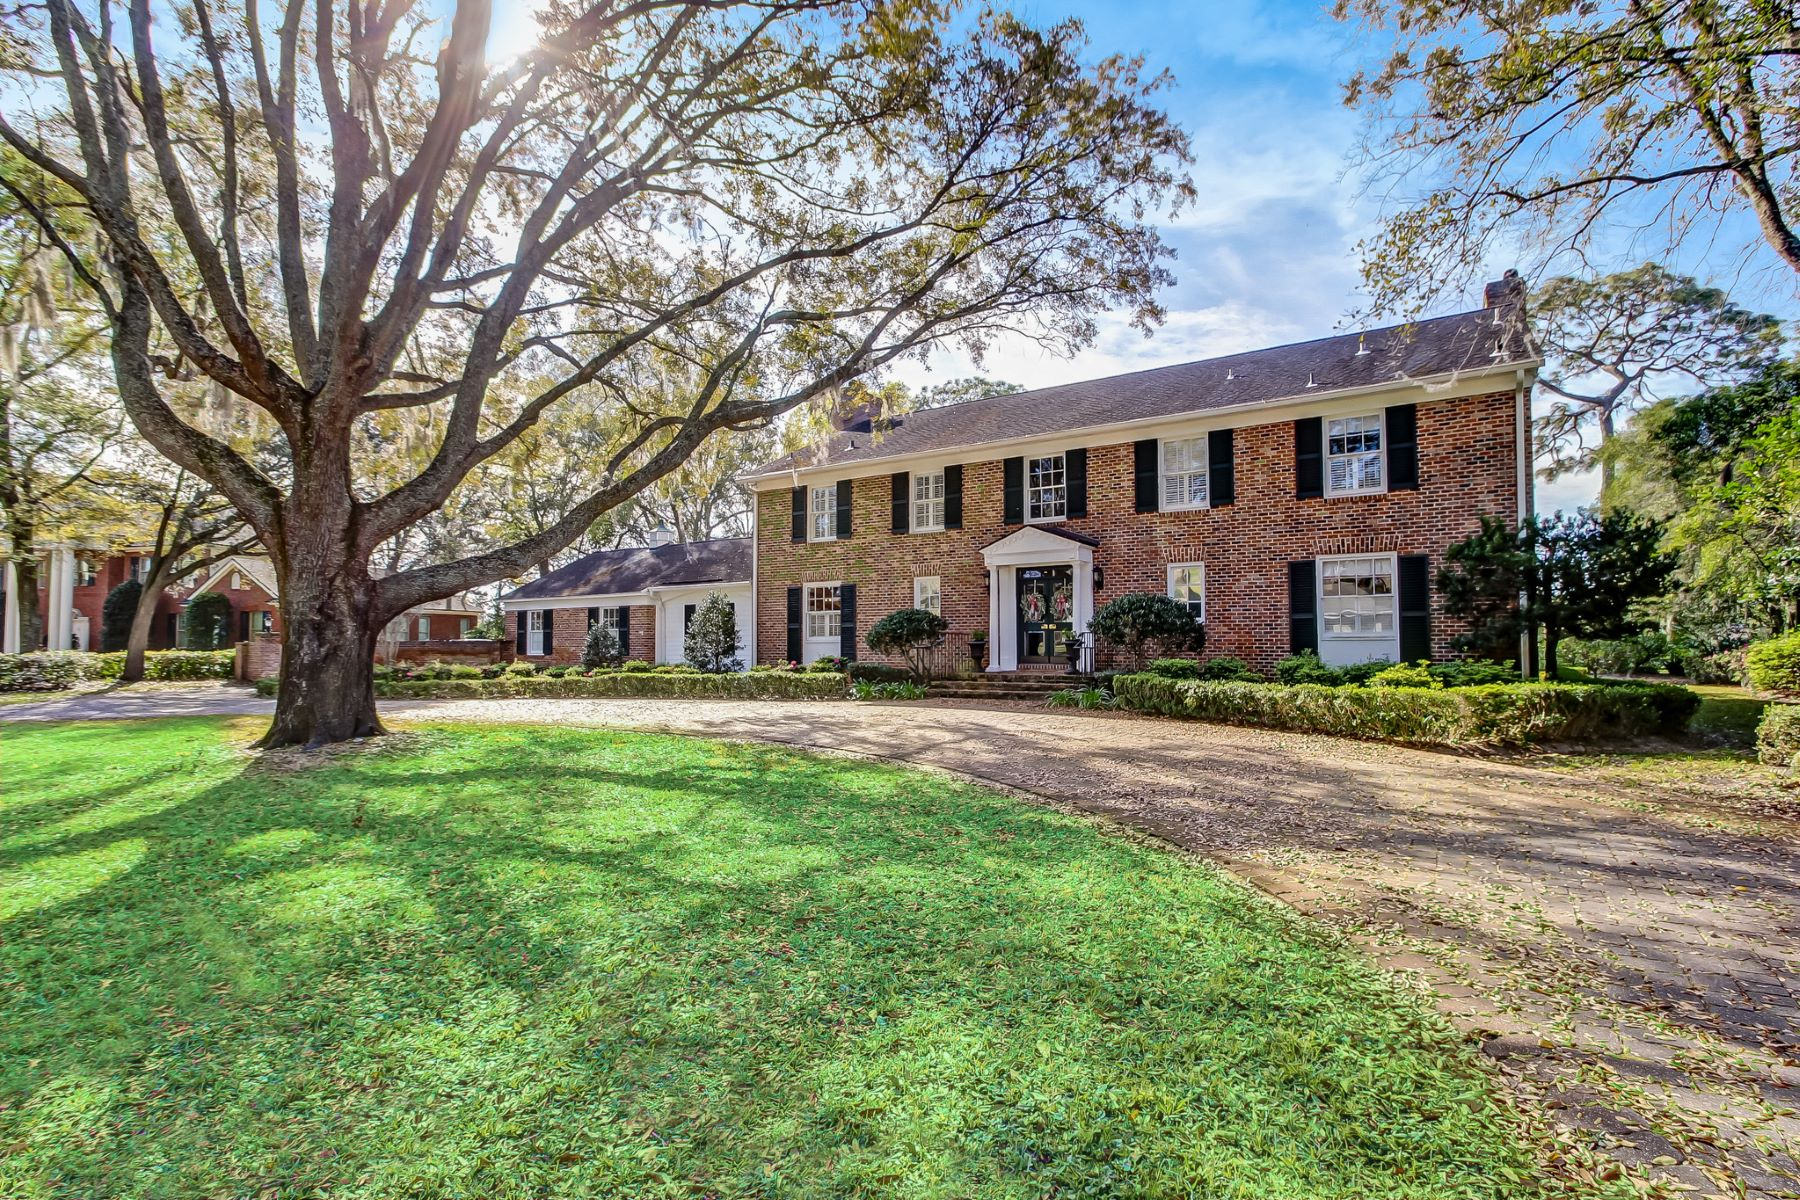 Single Family Home for Sale at Golf course Home on the 1st Fairway 10120 Whippoorwill Lane Deerwood, Jacksonville, Florida, 32256 United States